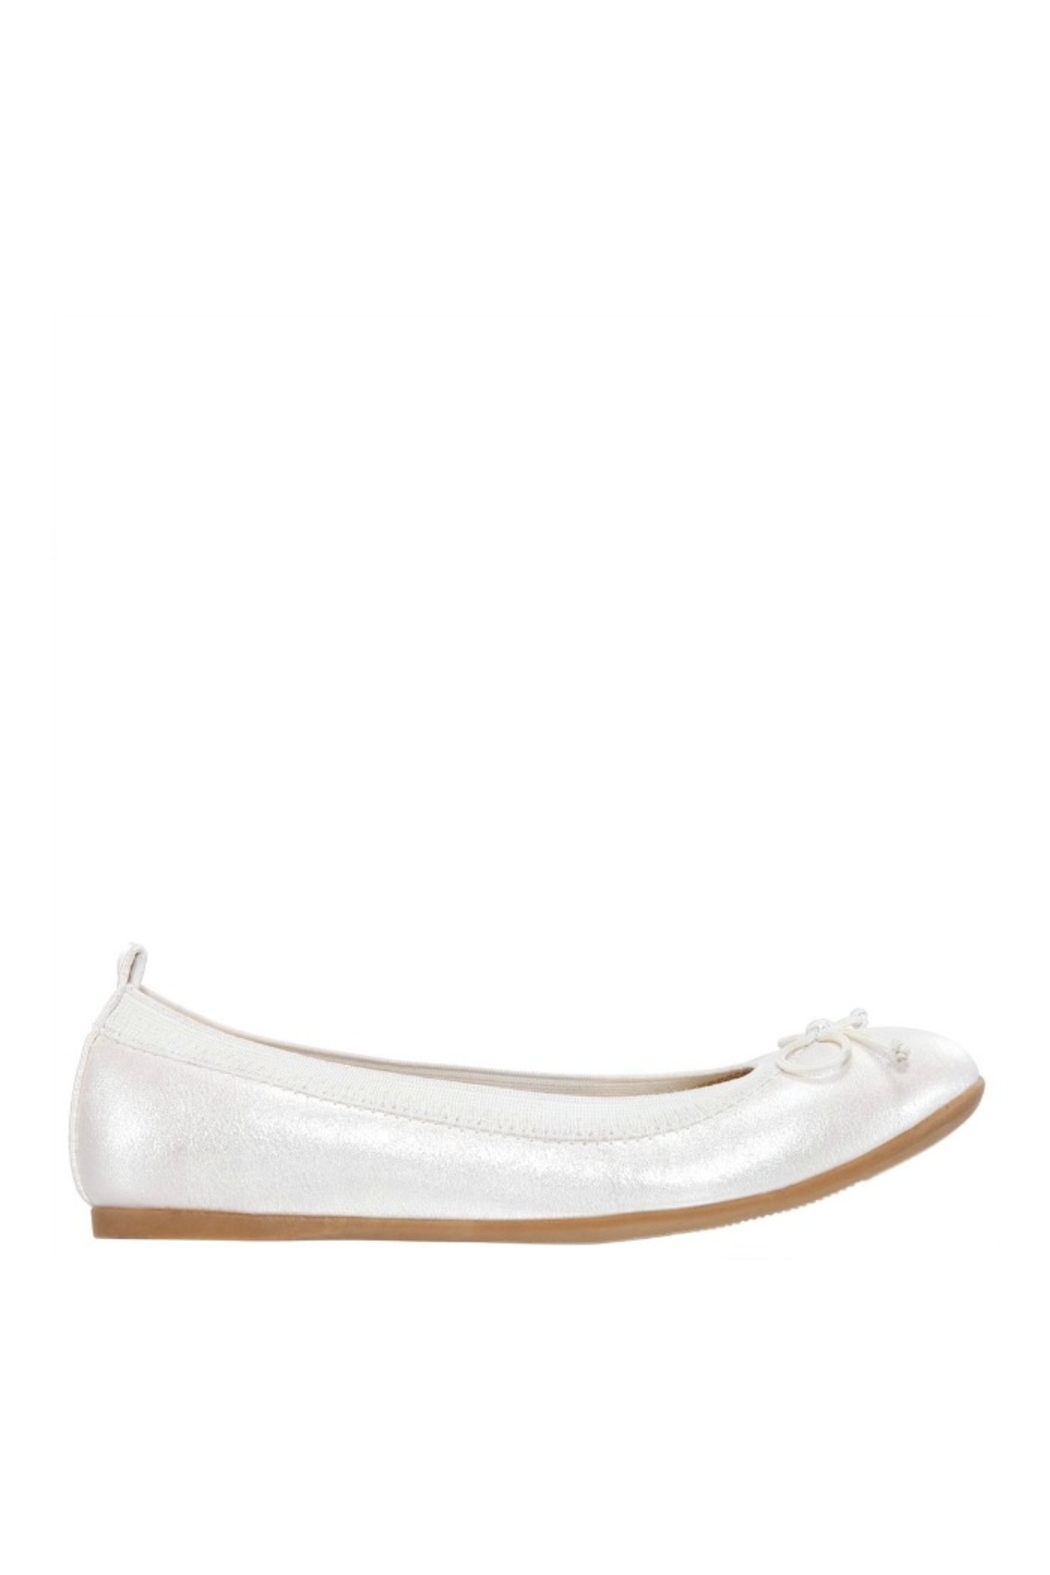 Nina Kids Esther Flat in Ivory Pearlized - Front Full Image